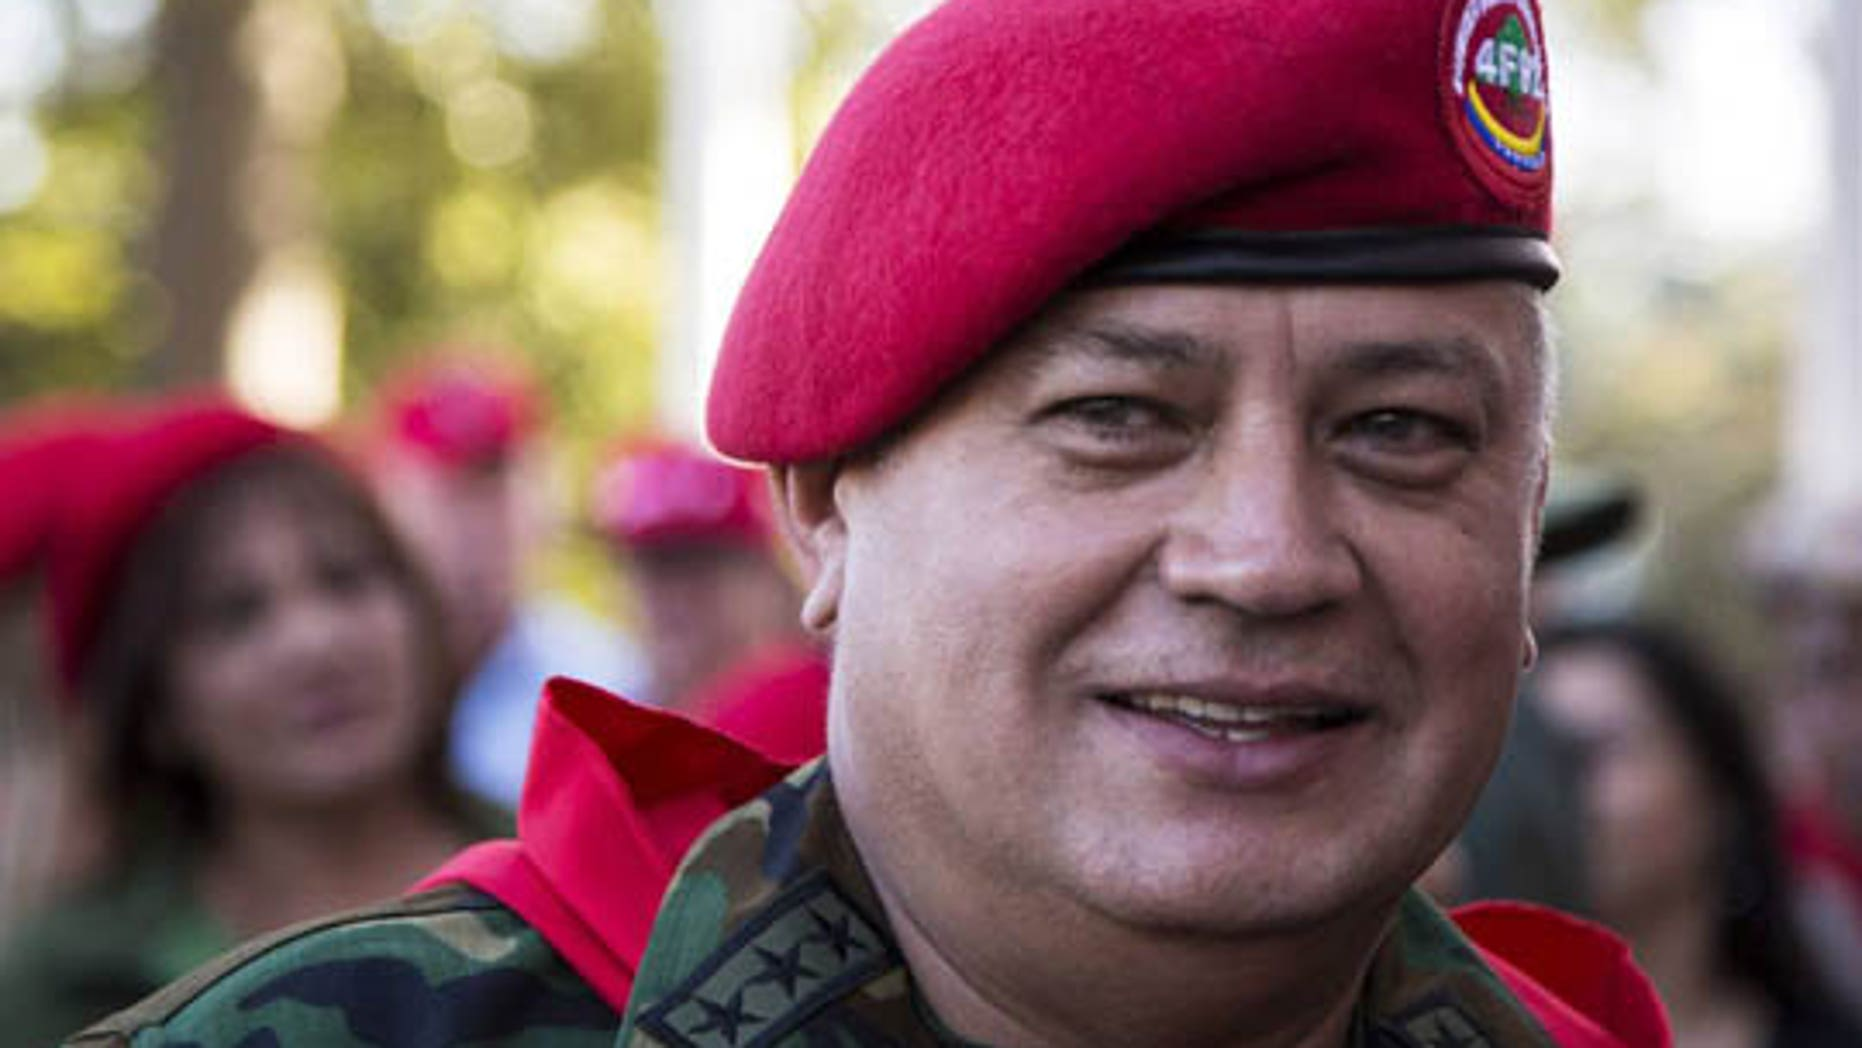 This undated photo shows Diosdado Cabello, president of Venezuela's National Assembly and a leading target of U.S. investigations into alleged drug trafficking and money laundering by senior officials in the South American nation. (Reuters)